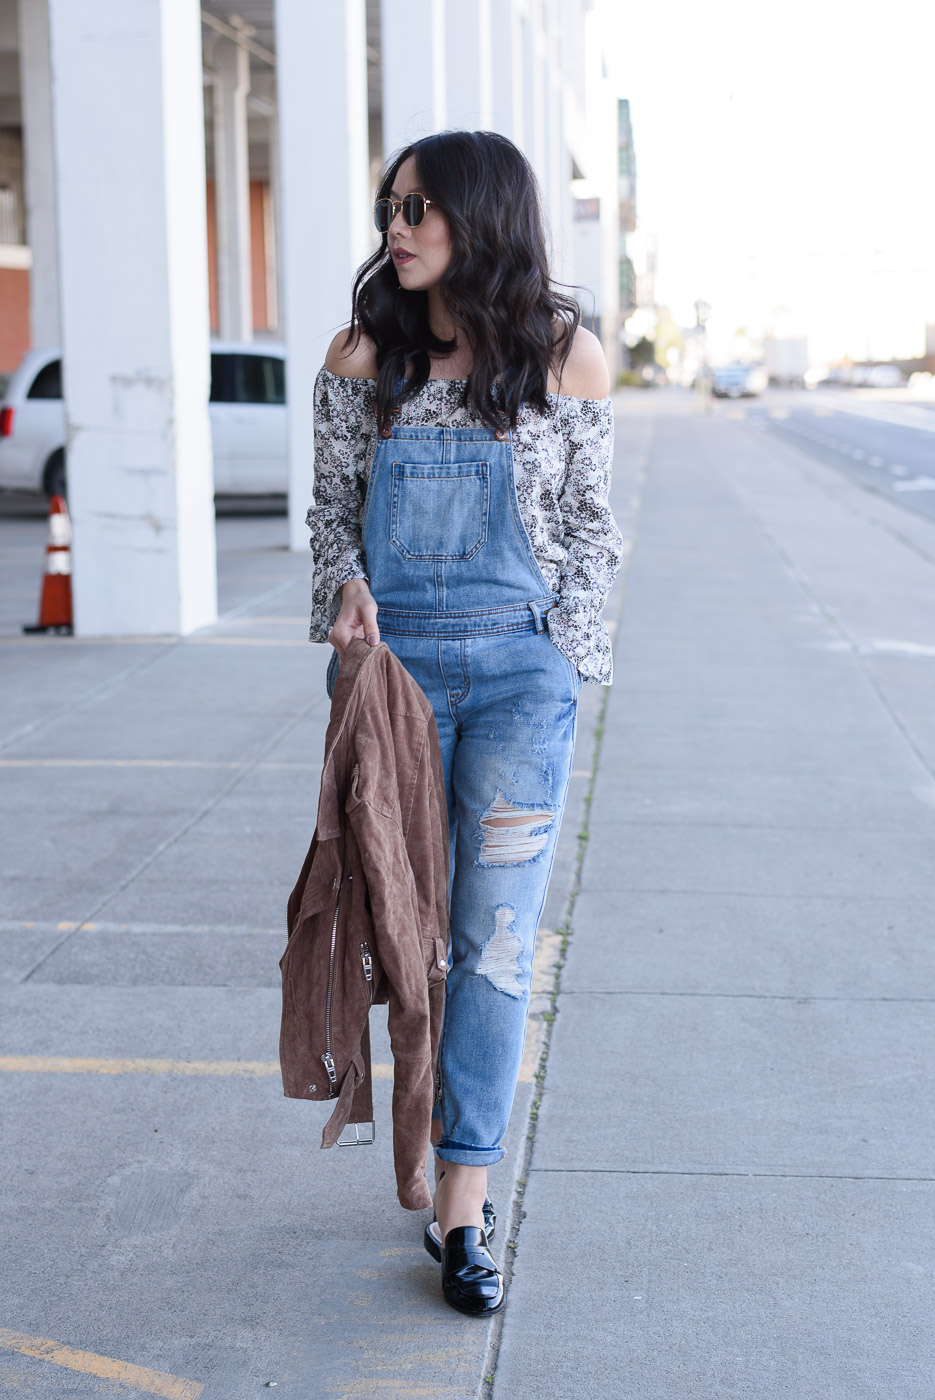 how-to-wear-overalls-outfit-ideas-if-youre-petite-5